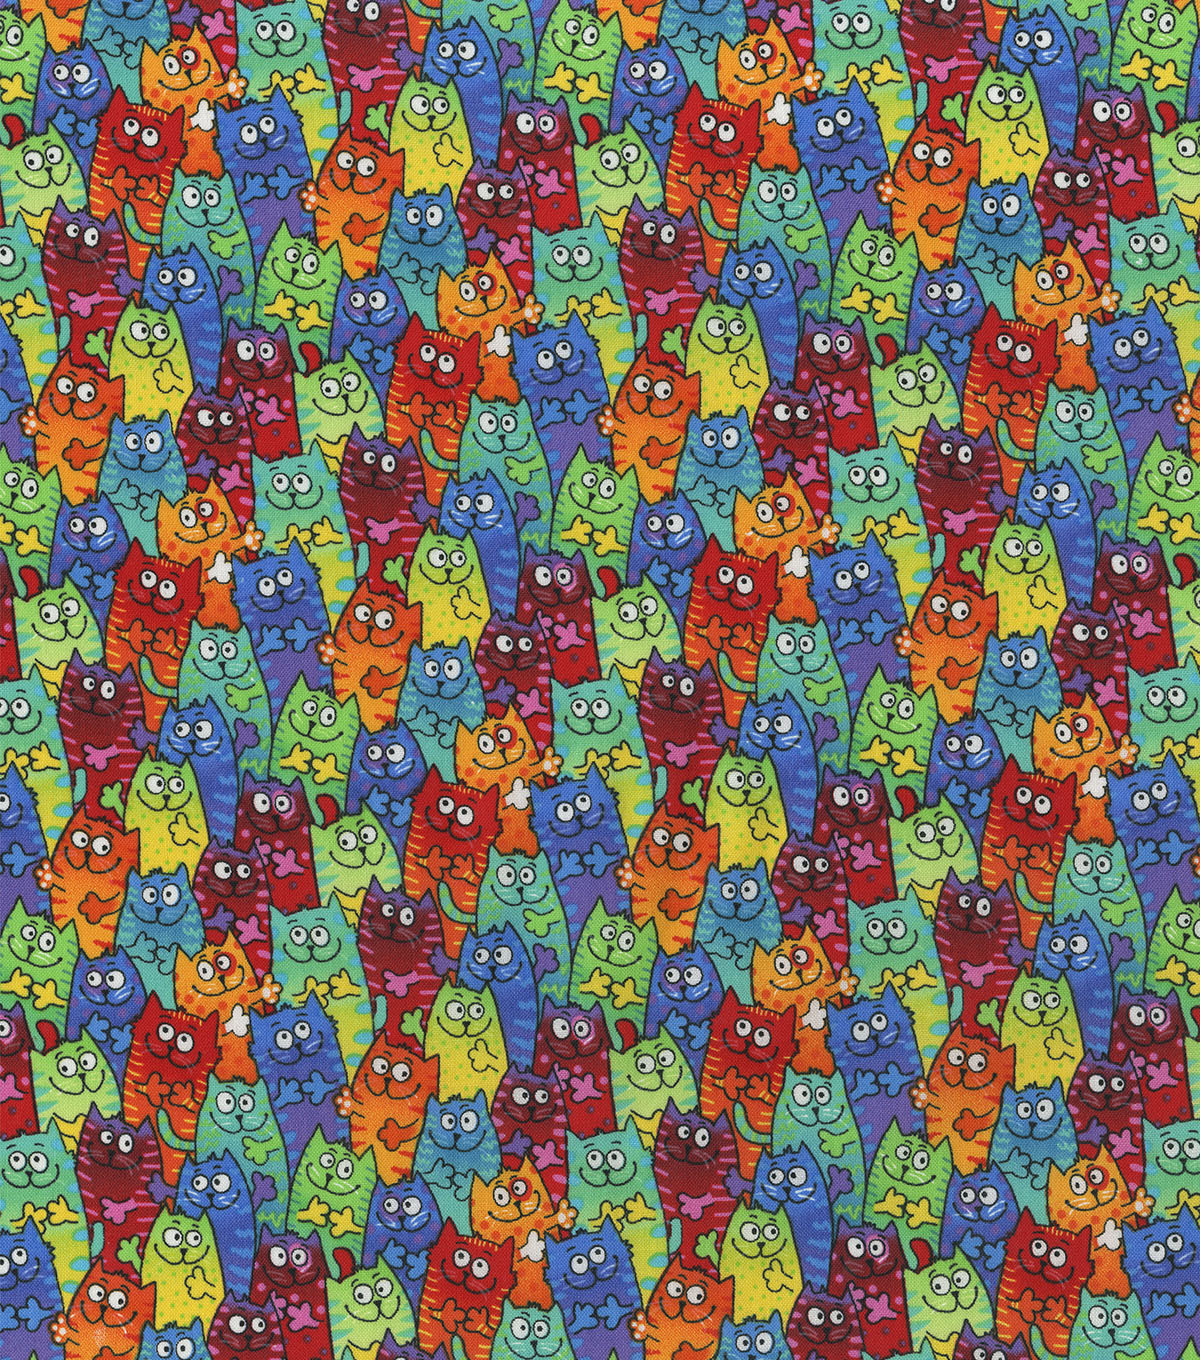 Novelty Cotton Fabric 44''-Tie Dye Packed Cats